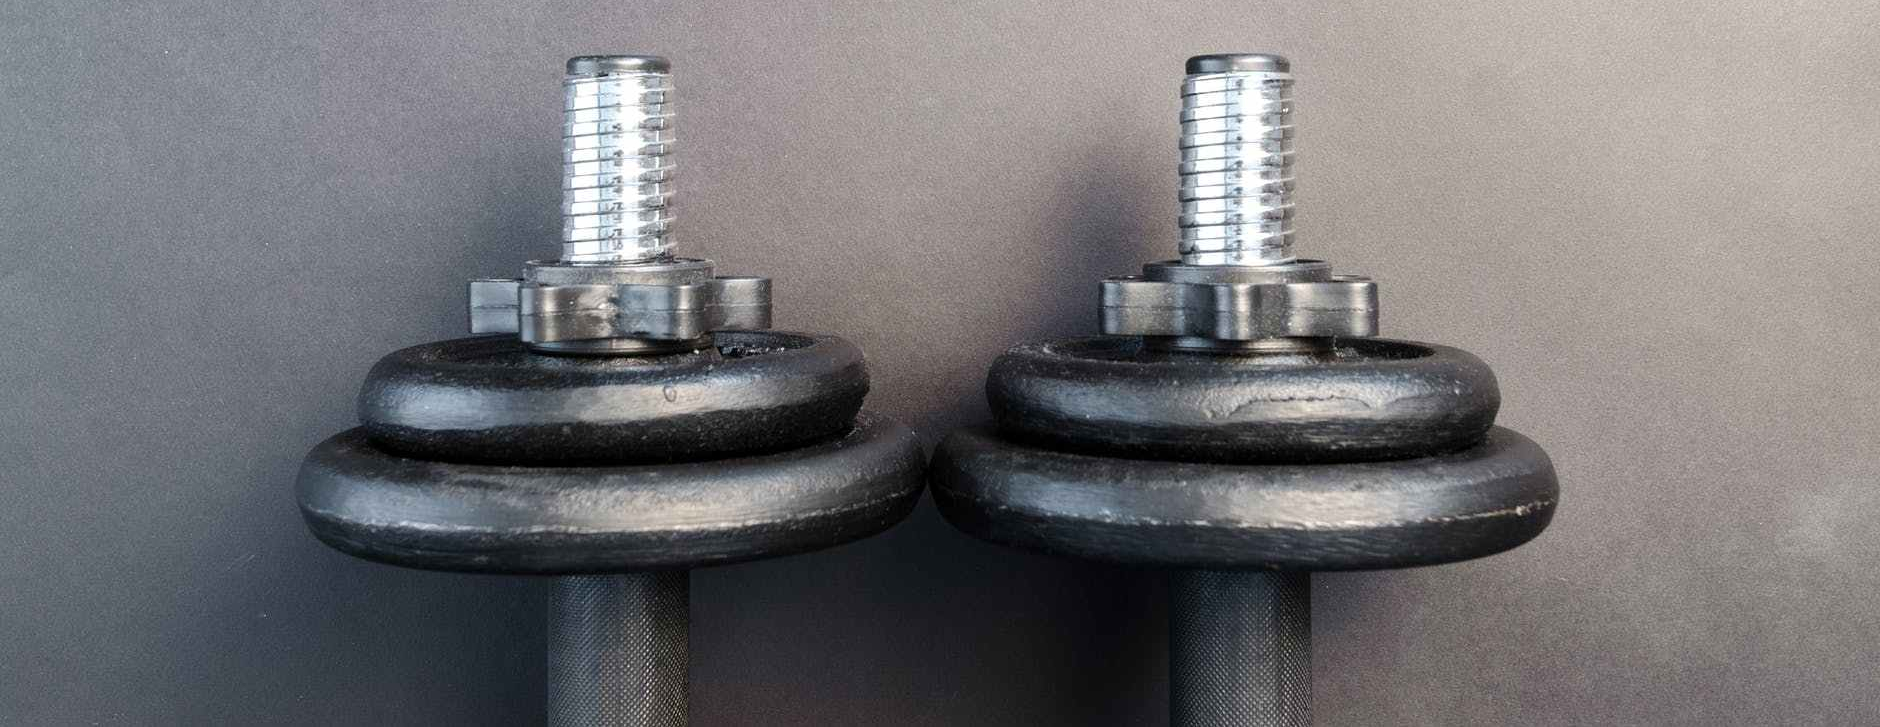 Photo by Lukas : top of two dumbells